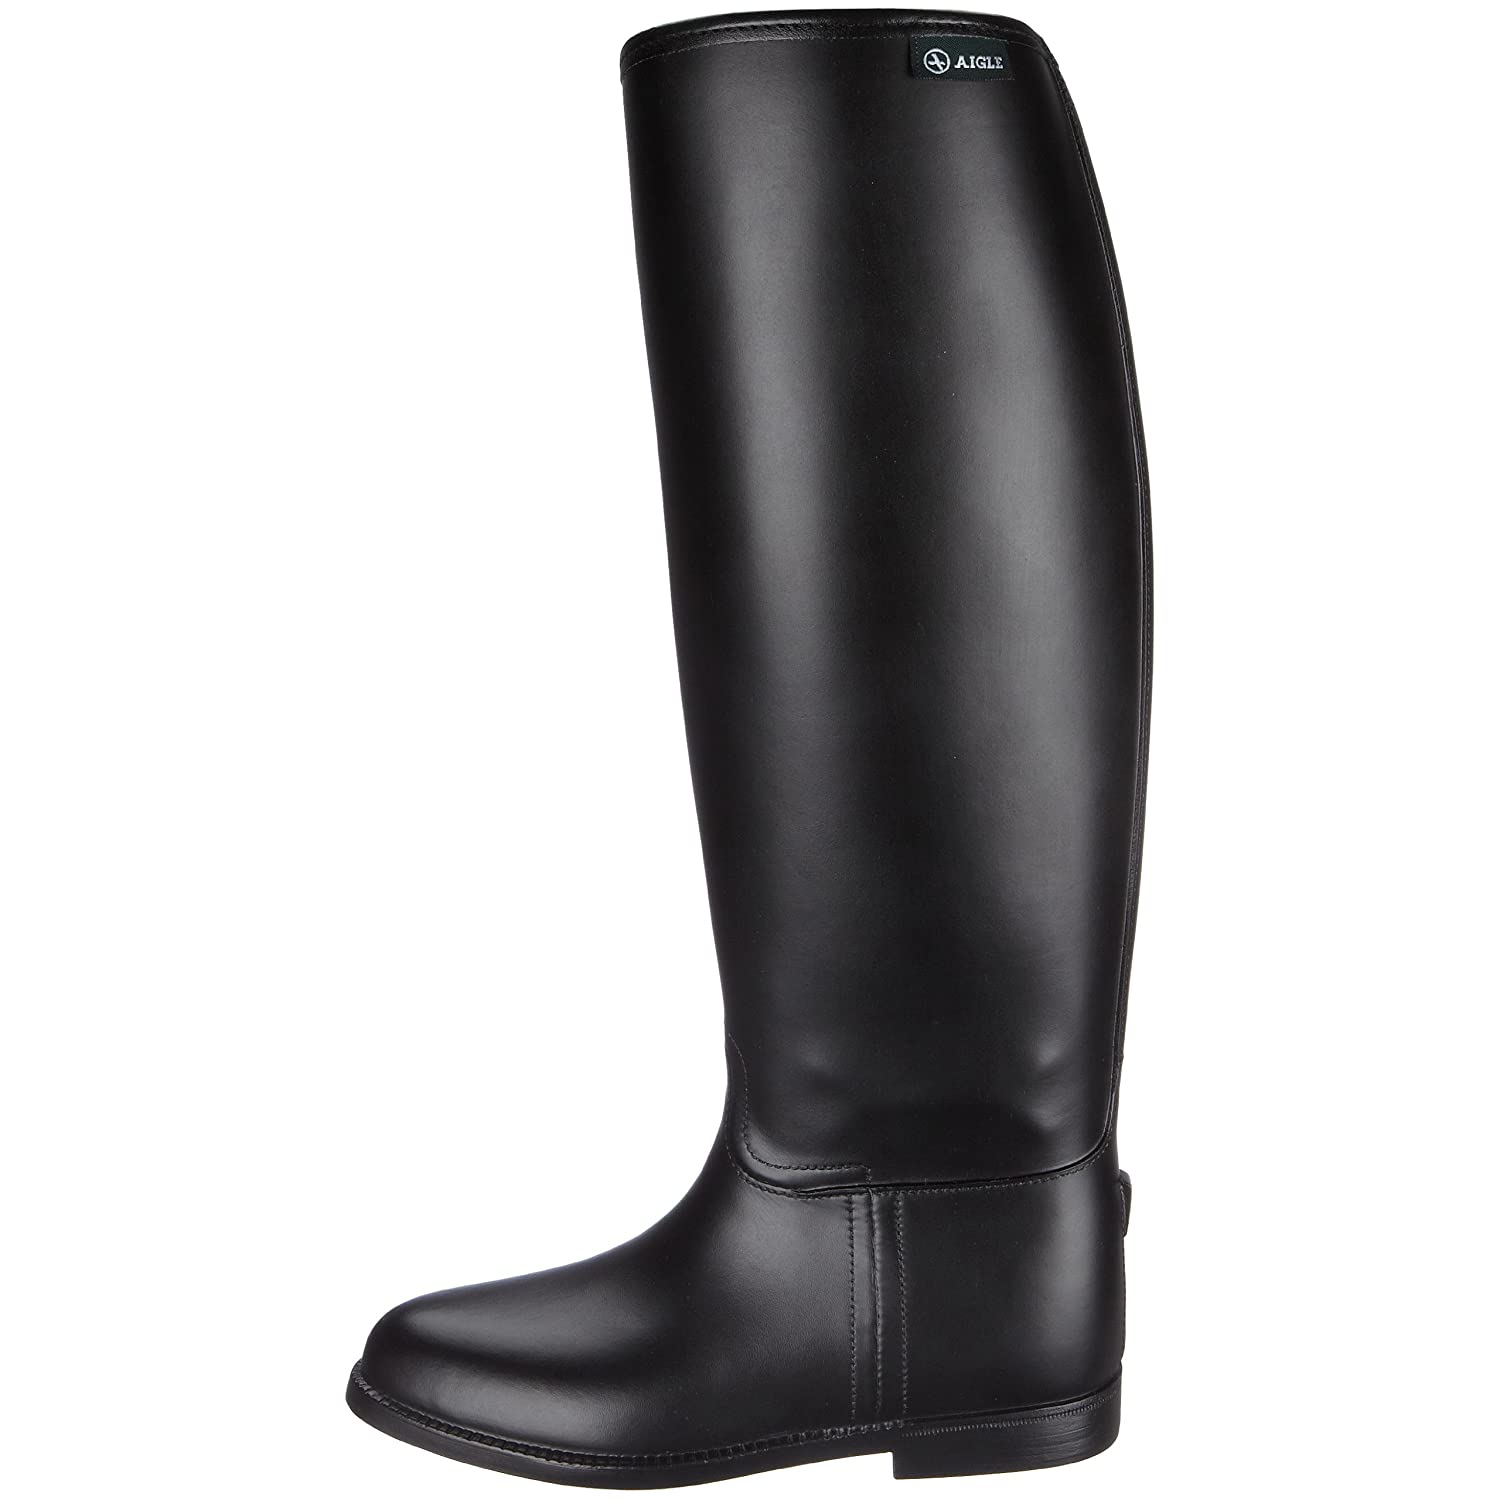 41 equitation bottes aigle femme start cuyer occasion botte 0NPX8ZwOkn